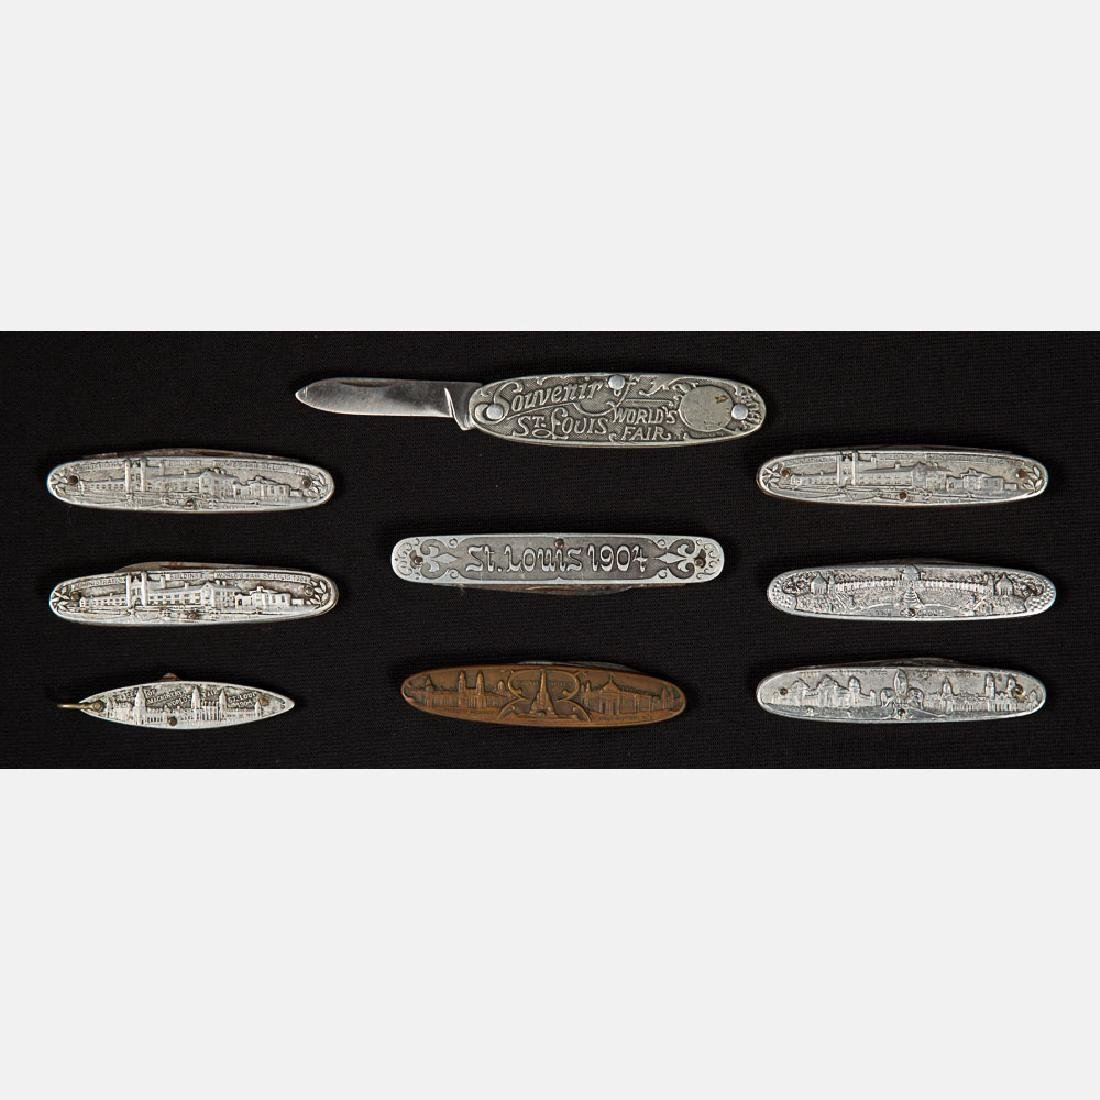 A Group of Nine Aluminum and Brass Pocket Knives from